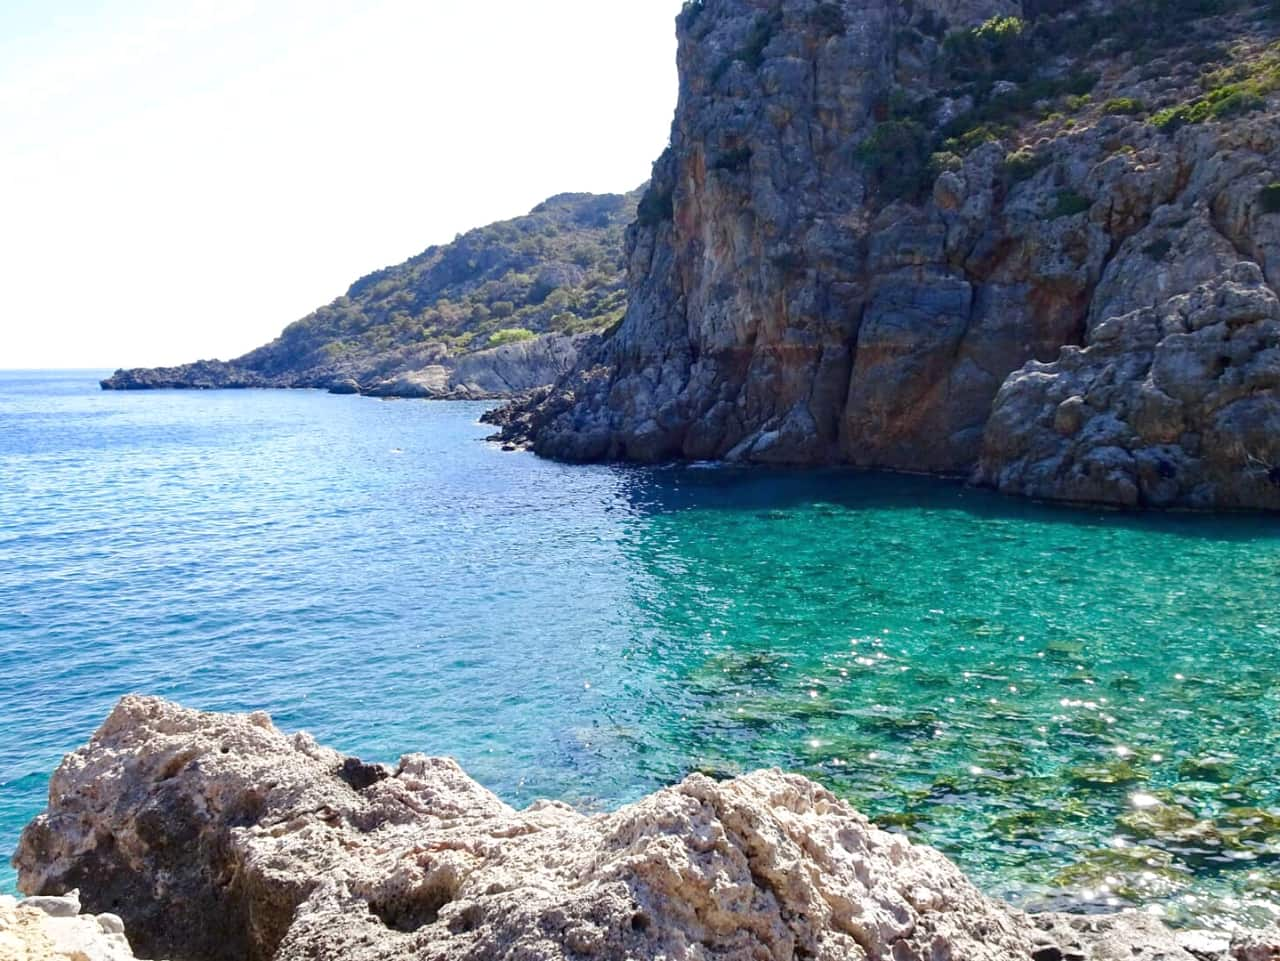 Some great photos to make you fall in love with Crete